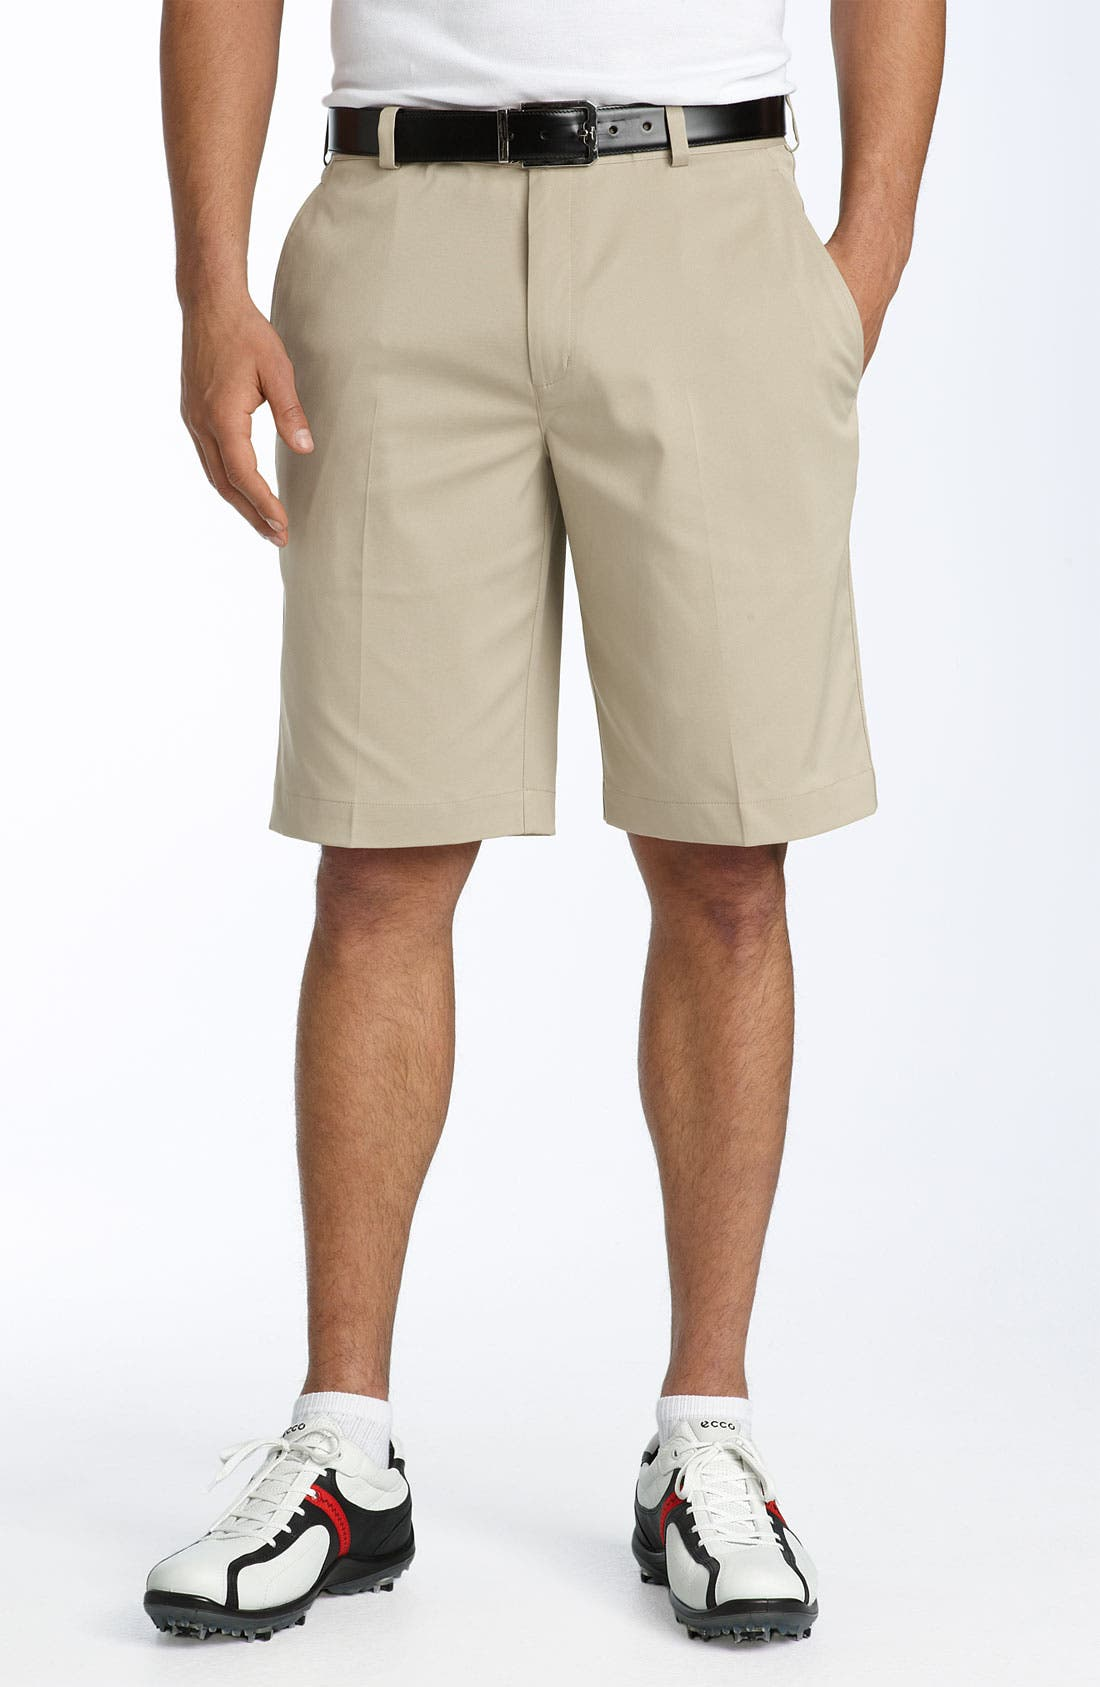 Alternate Image 1 Selected - Nike Golf Dri-FIT Flat Front Golf Shorts